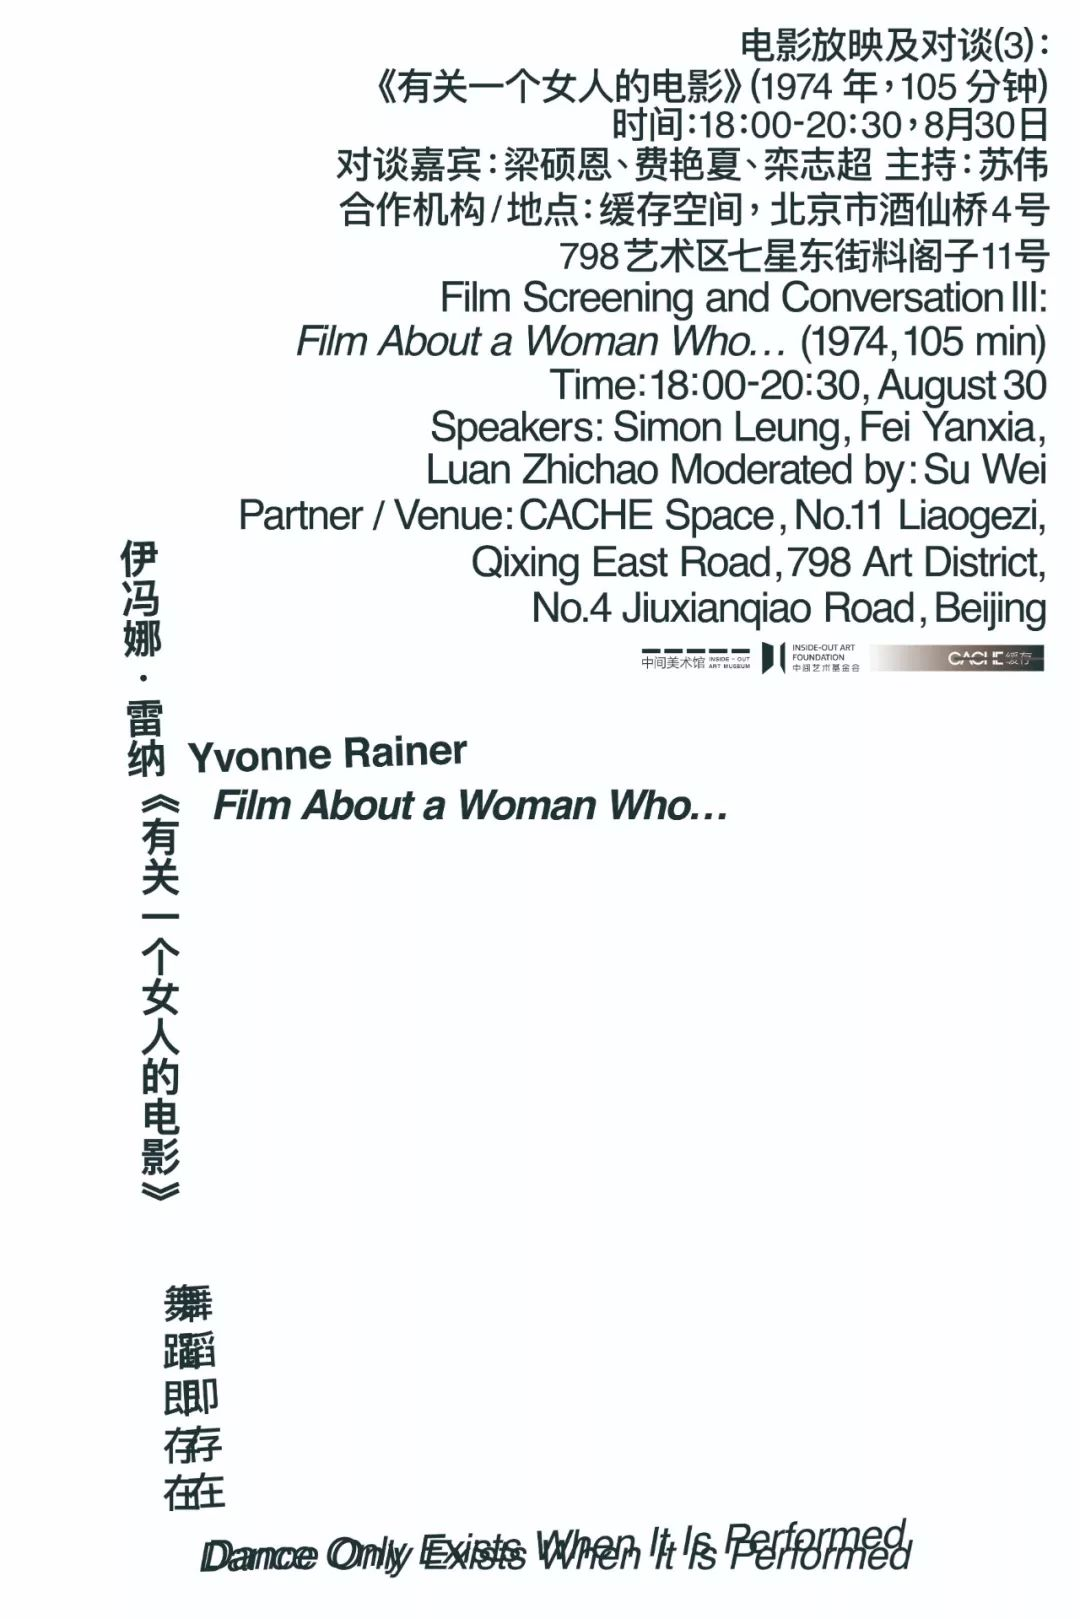 1974    FILM ABOUT A WOMAN WHO…      16 mm, sw/ b&w, Farbe/ color, 105 min,    Kanera/Camera: Babette Mangolte     Based on the theater play  This is the story of a woman who…,  feeling of anger, fear and desire permeate the entire film, which consists of diverse material: films, slides, photographs, andarchive materials. Off-camera, a male and a female voice narrate a couple's increasing estrangement, their deceit and disappointment. The images however counteract the evocative power of these narratives: places and times change while the voices are interchangeable between differing people. In contrast to the theater play, attention in the film is focused on the woman and her situation, her relationship with her husband, and to other women.